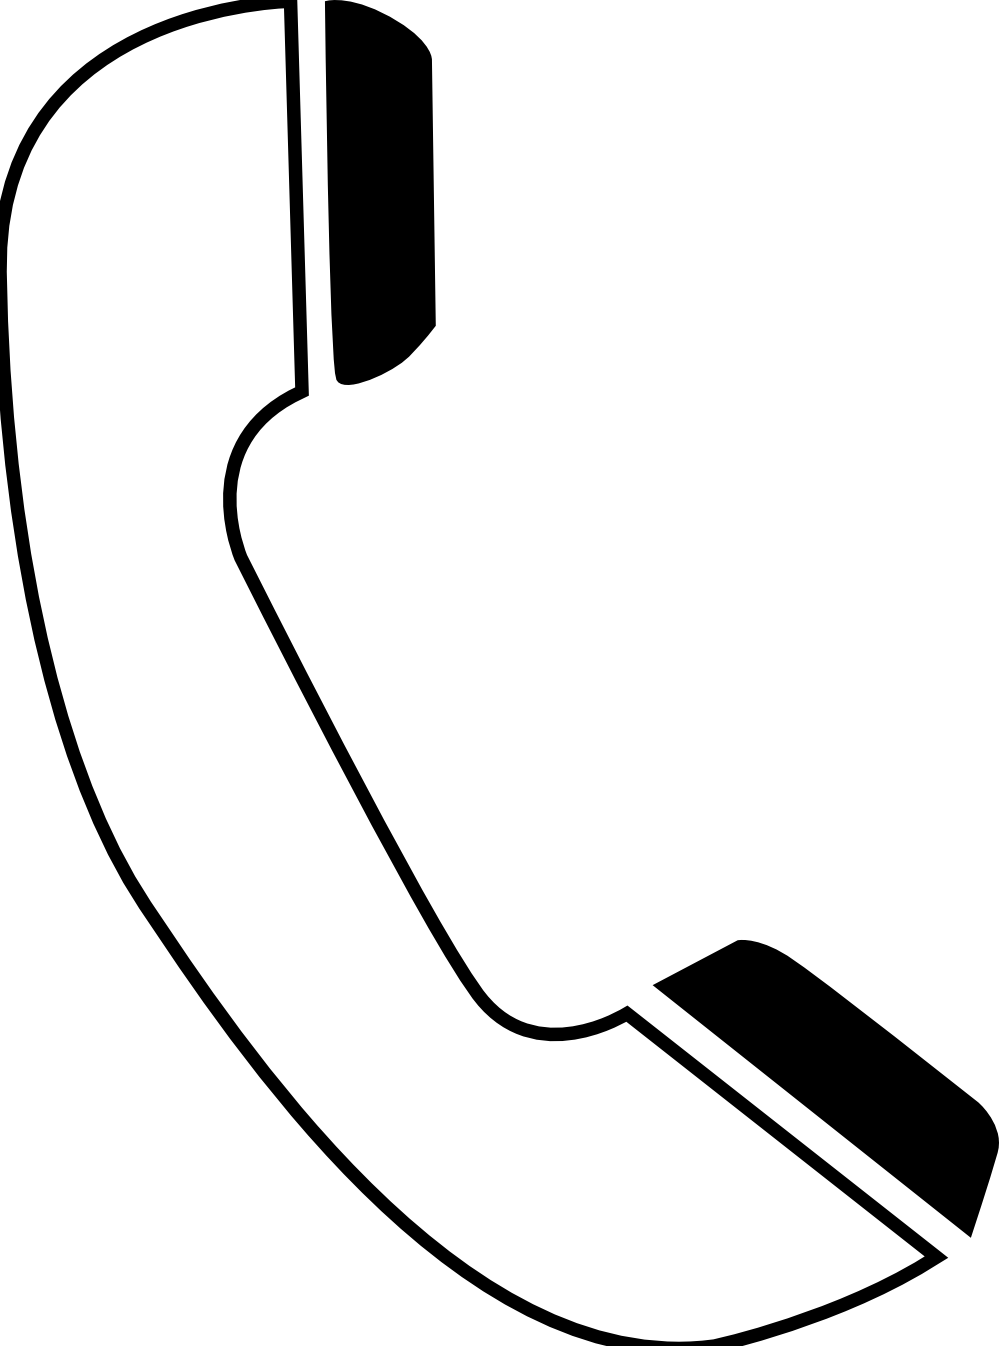 Person on telephone clipart image #14648